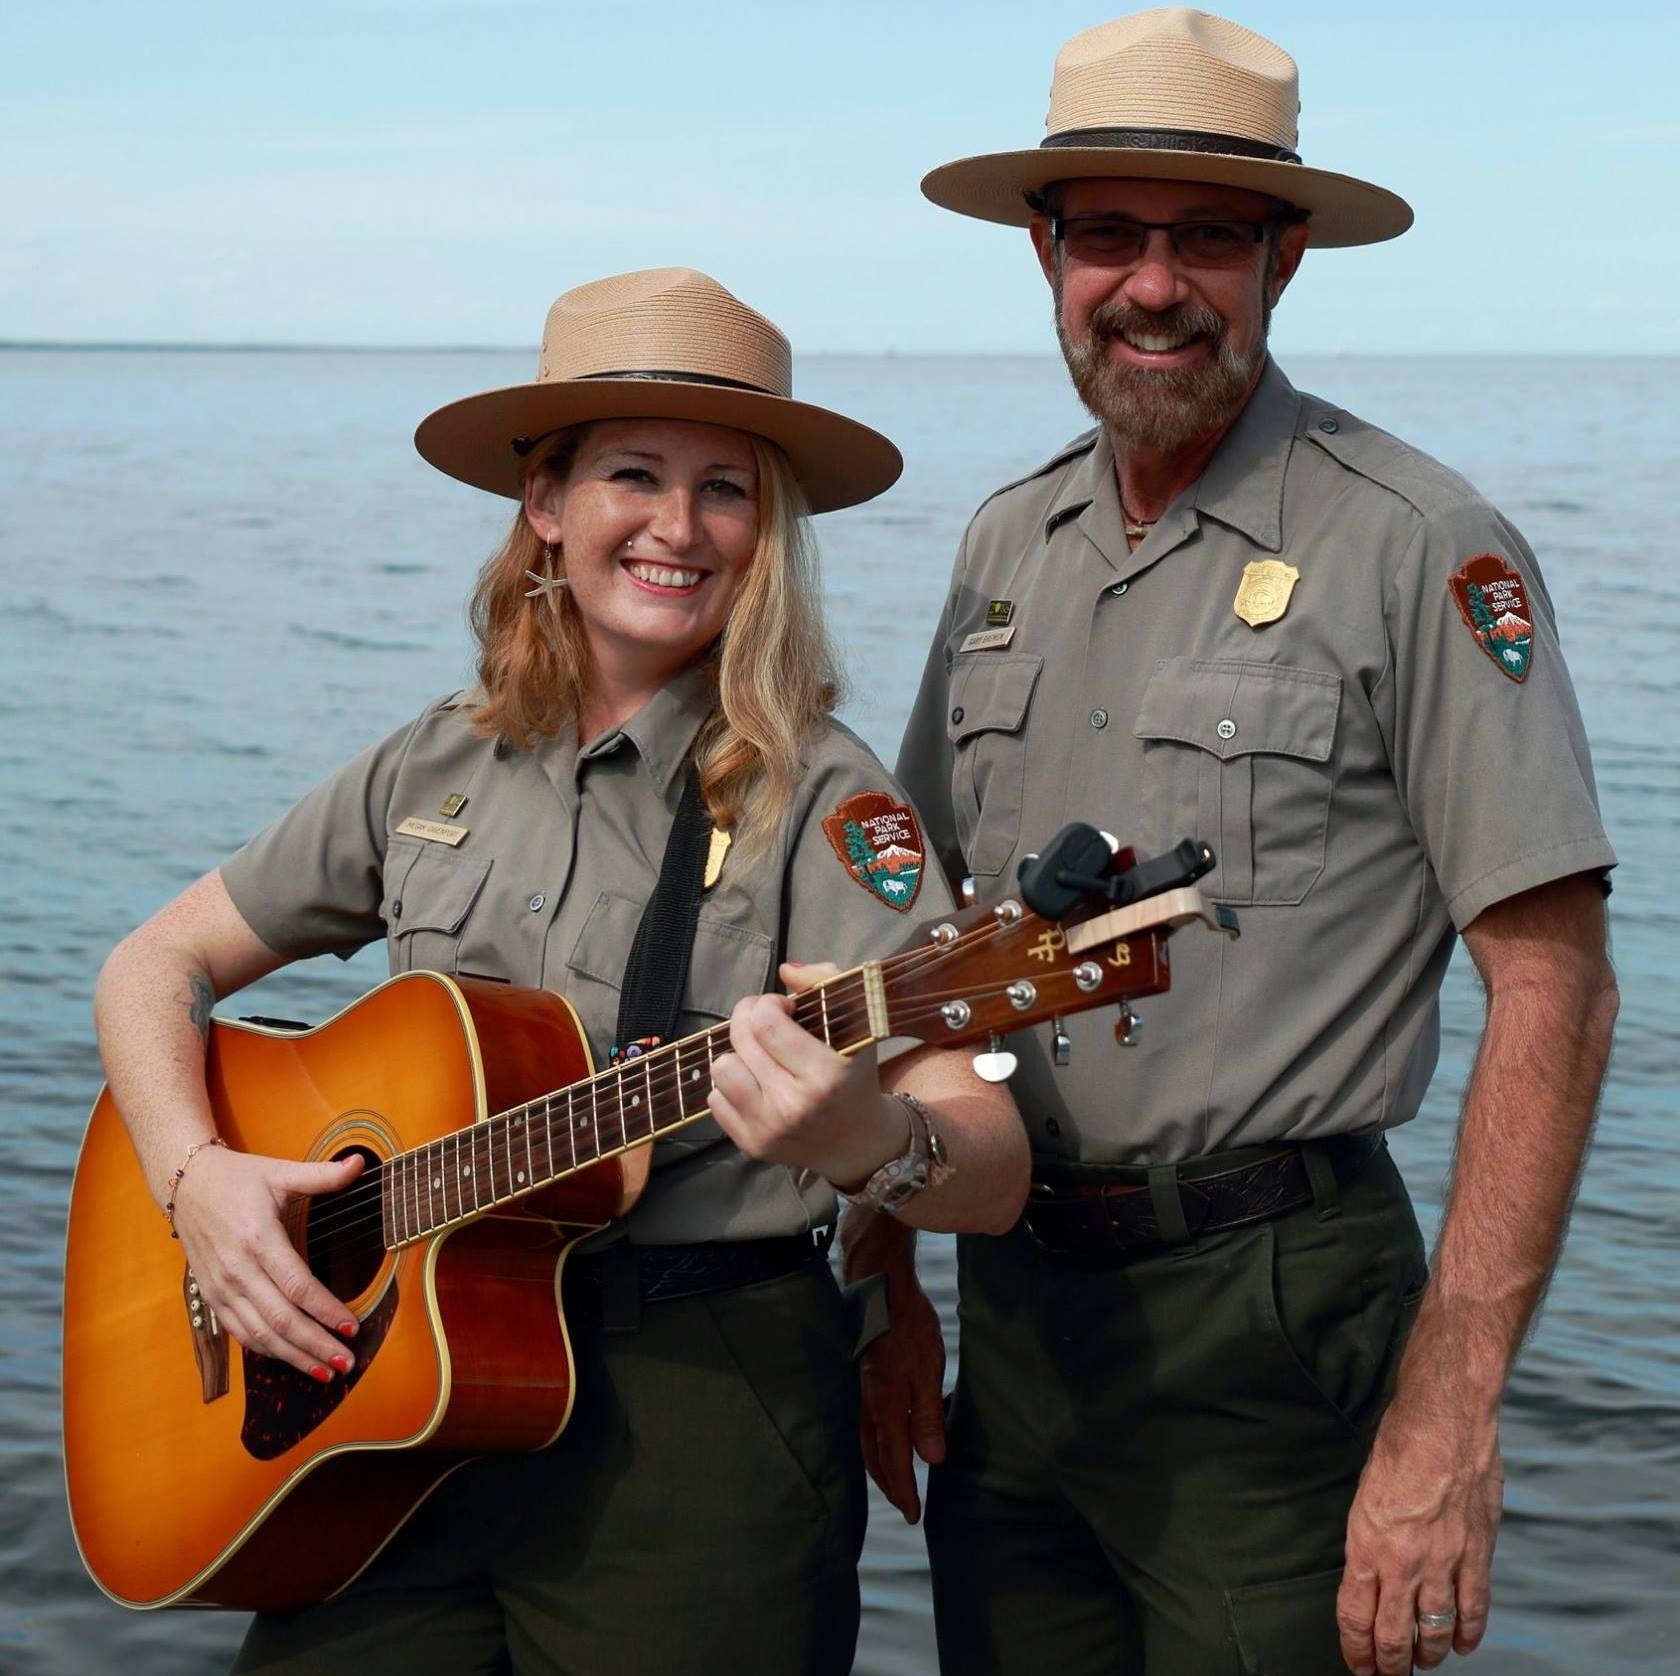 Woman holding guitar and man, both in park ranger uniforms